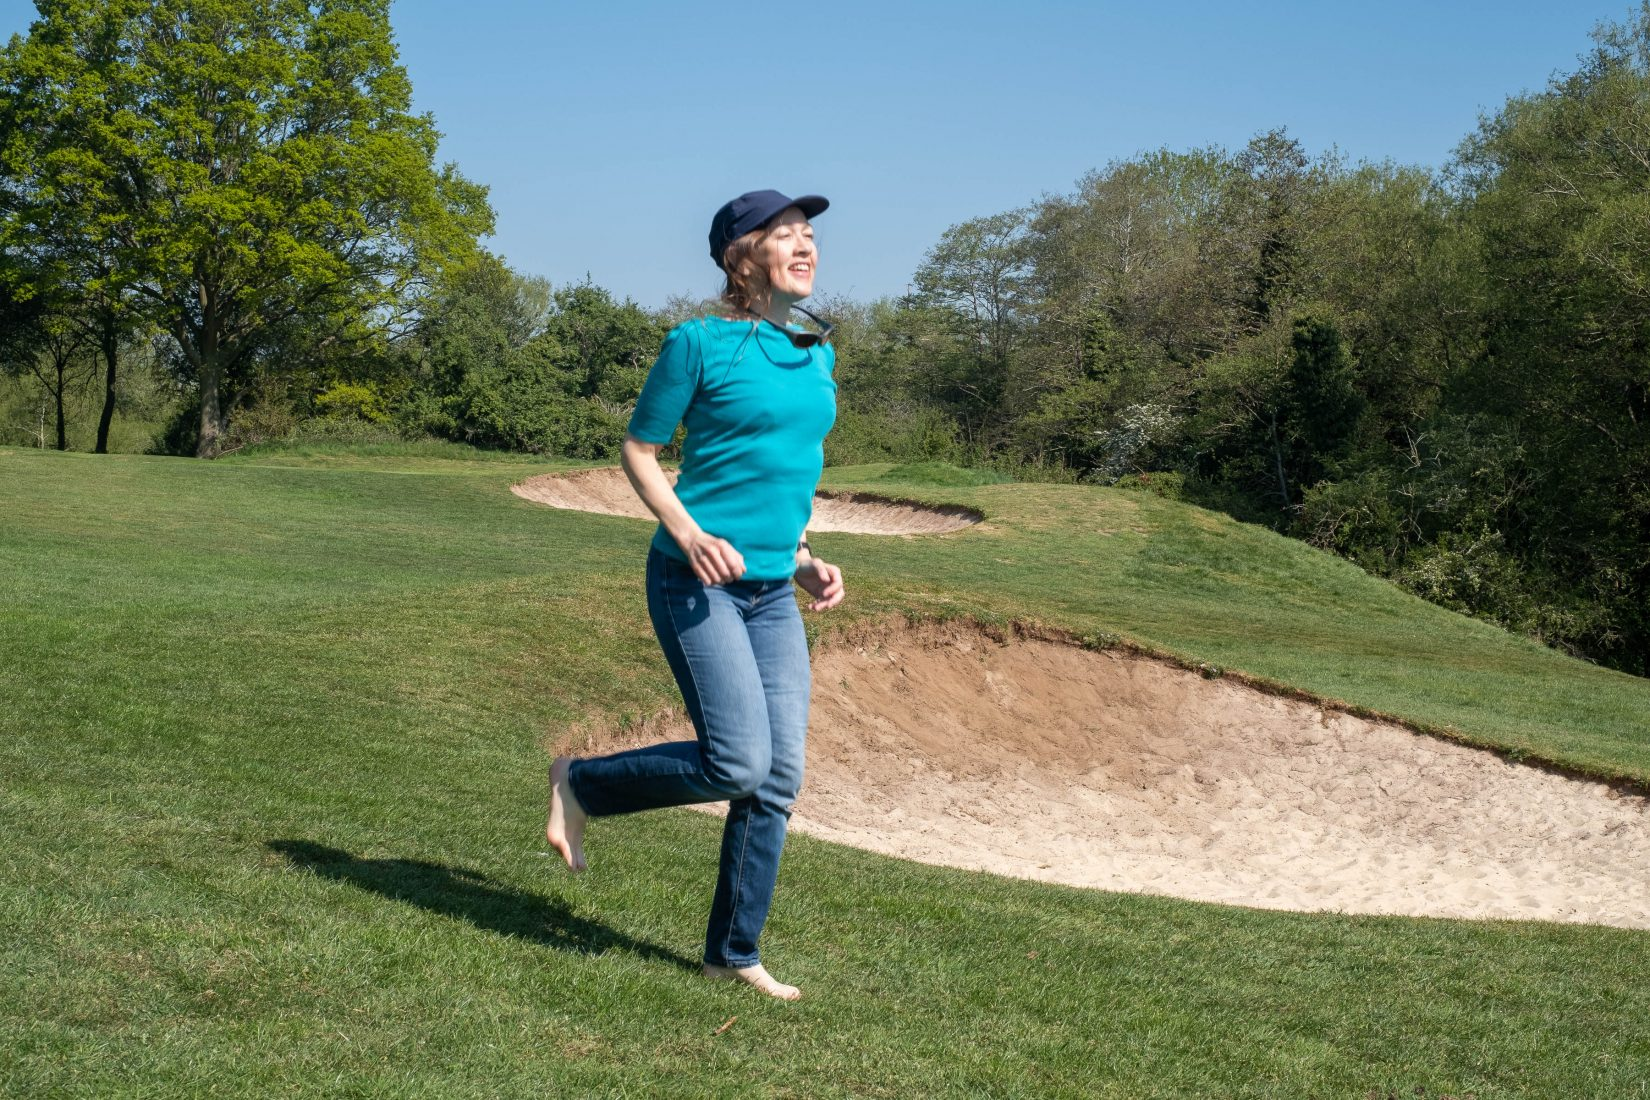 A woman runs barefoot on a manicured golf course with a look of joy on her face. Sunglasses on a strap bob around her neck.